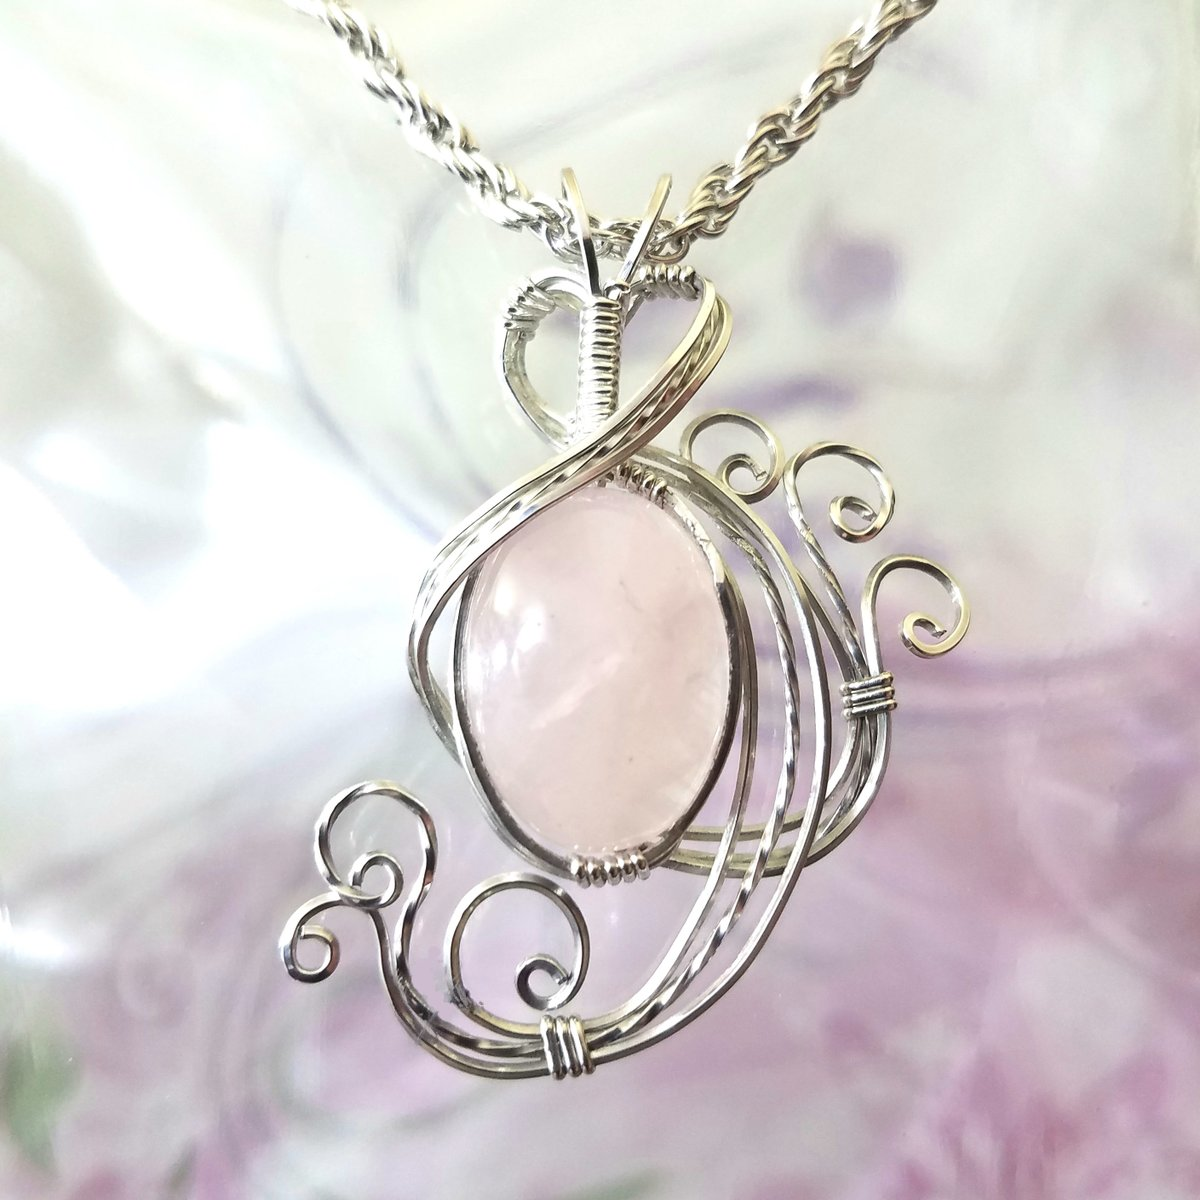 Pink Rose Quartz Womans Pendant Wire Wrapped Jewelry Handmade in Silver With Free Shipping  #etsygifts #bohemian #handmade #fashion #handmadejewelry #jewelry #etsymntt #etsy